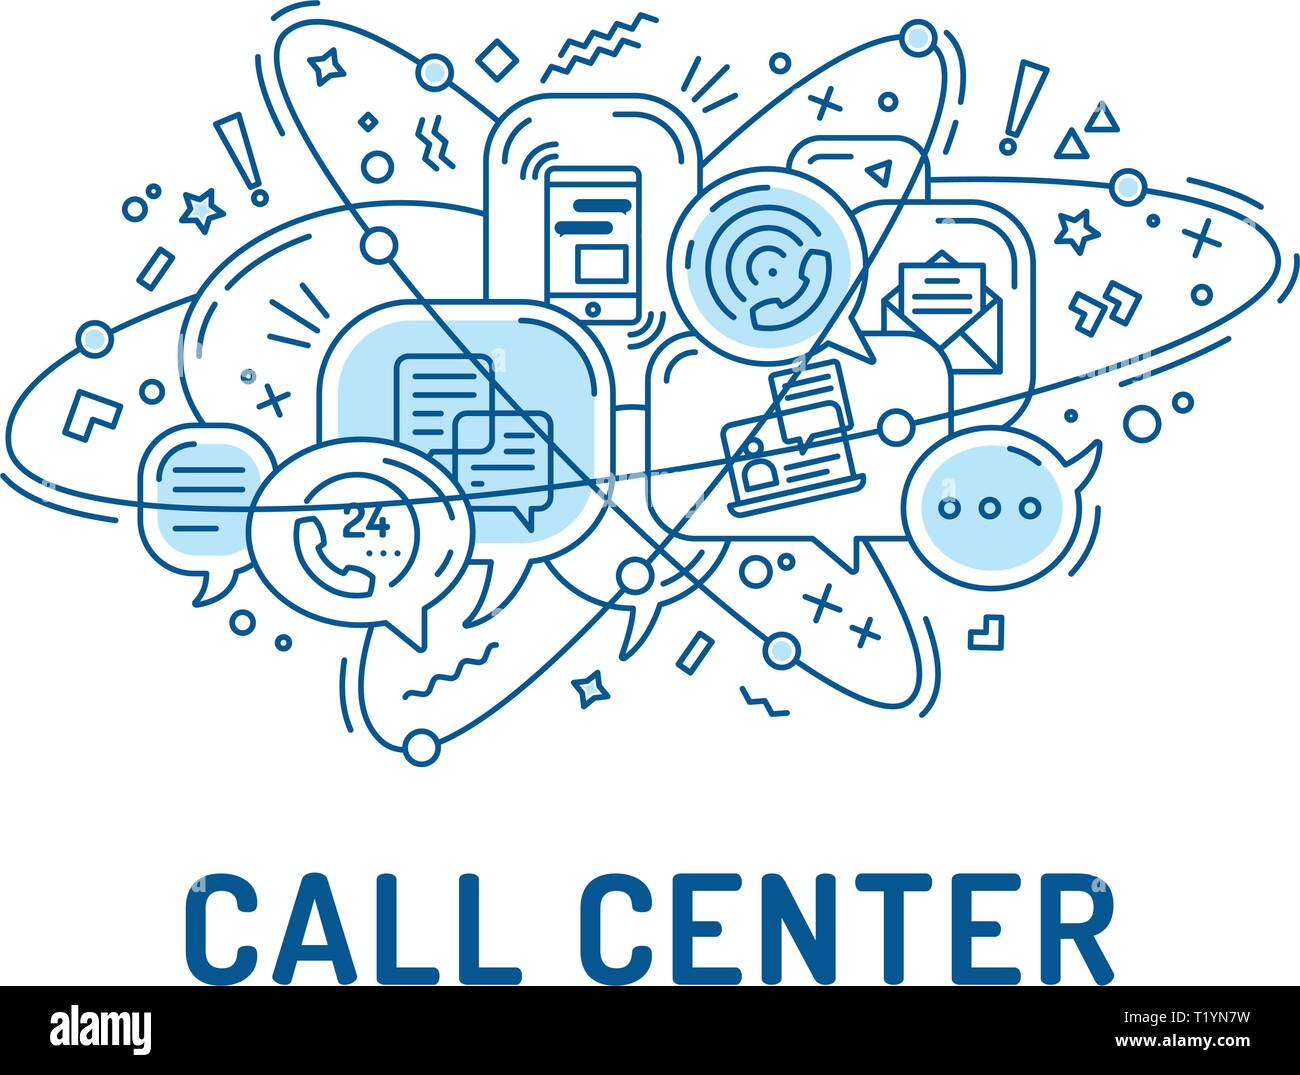 Illustration from communication or call center icons in chat bubbles with three orbital ovals - Stock Image